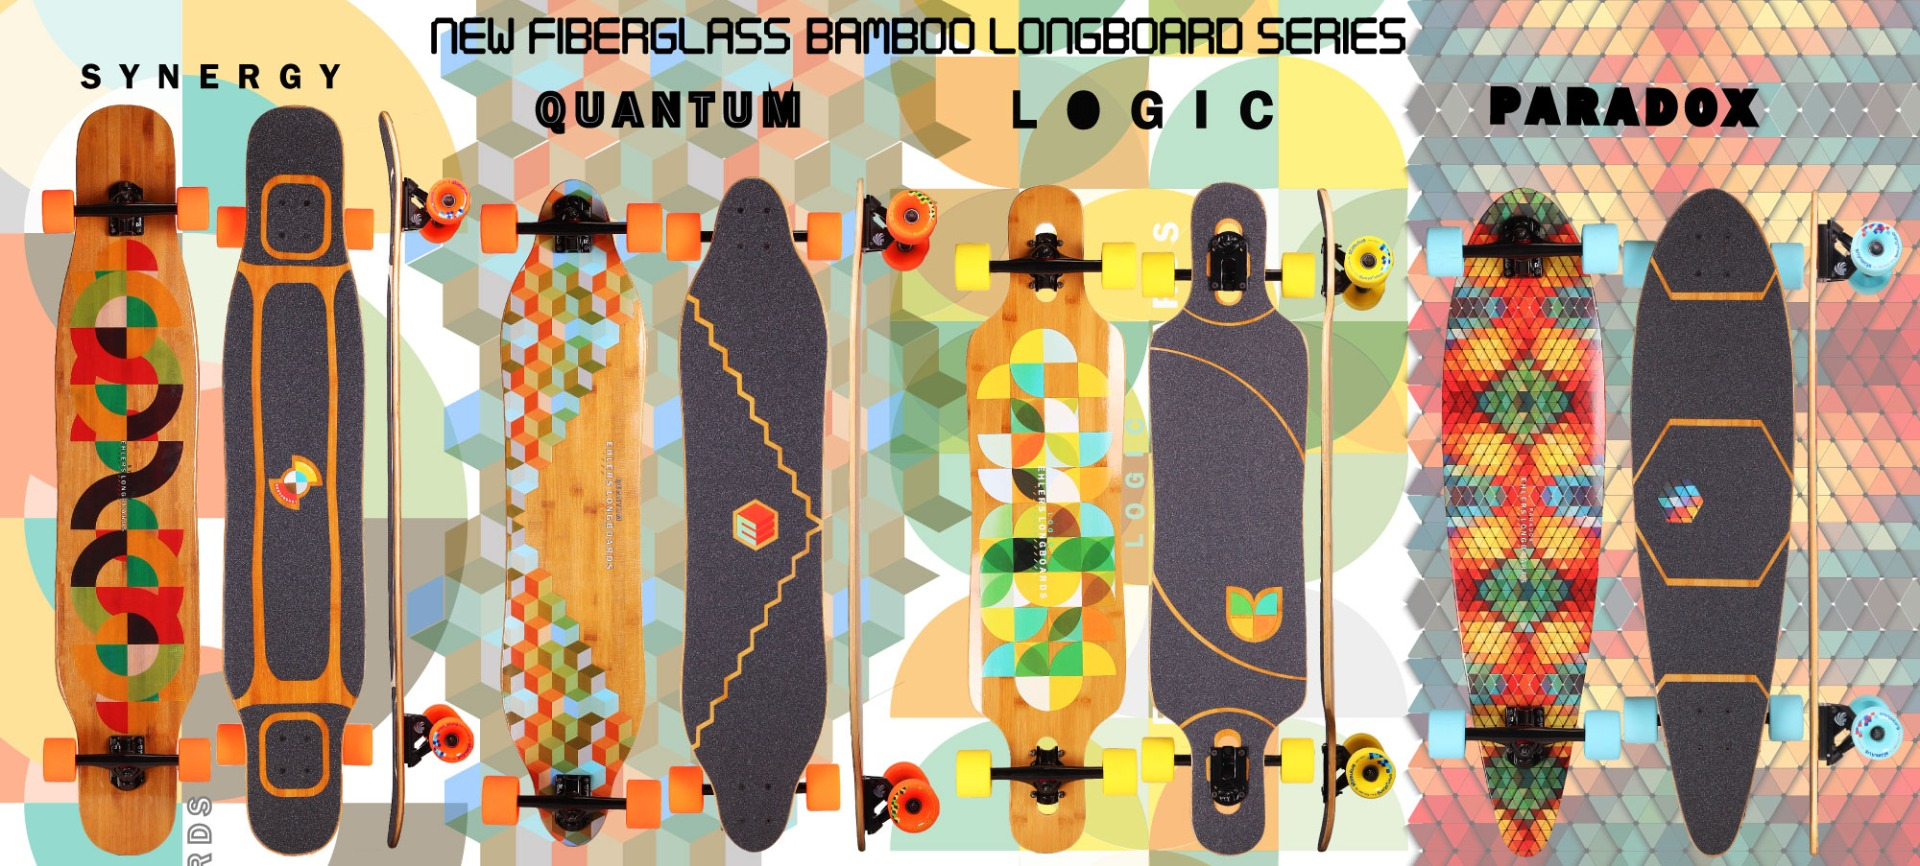 ehlerslongboards